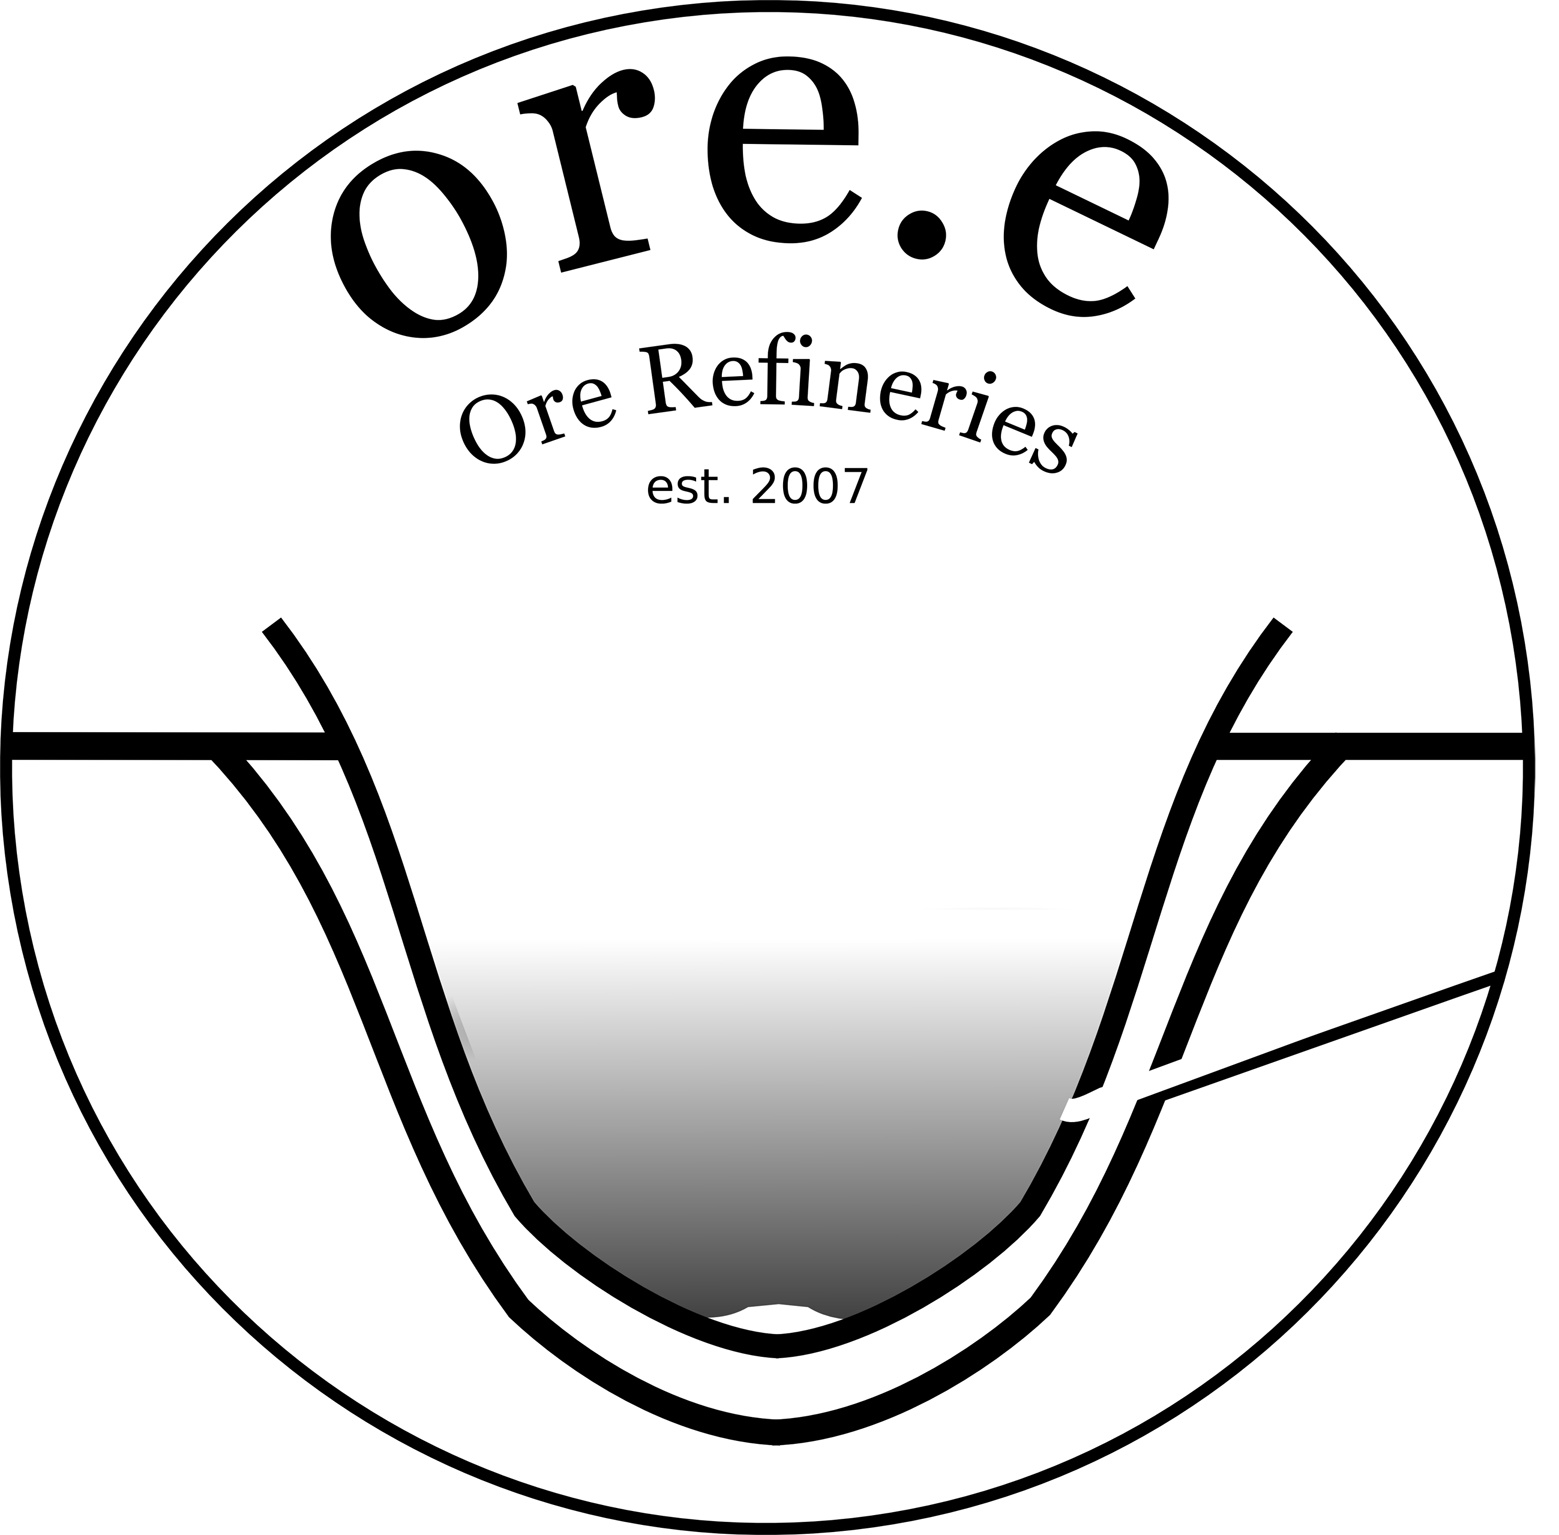 ore.e_refineries_original_logo_with_xmp_metadata